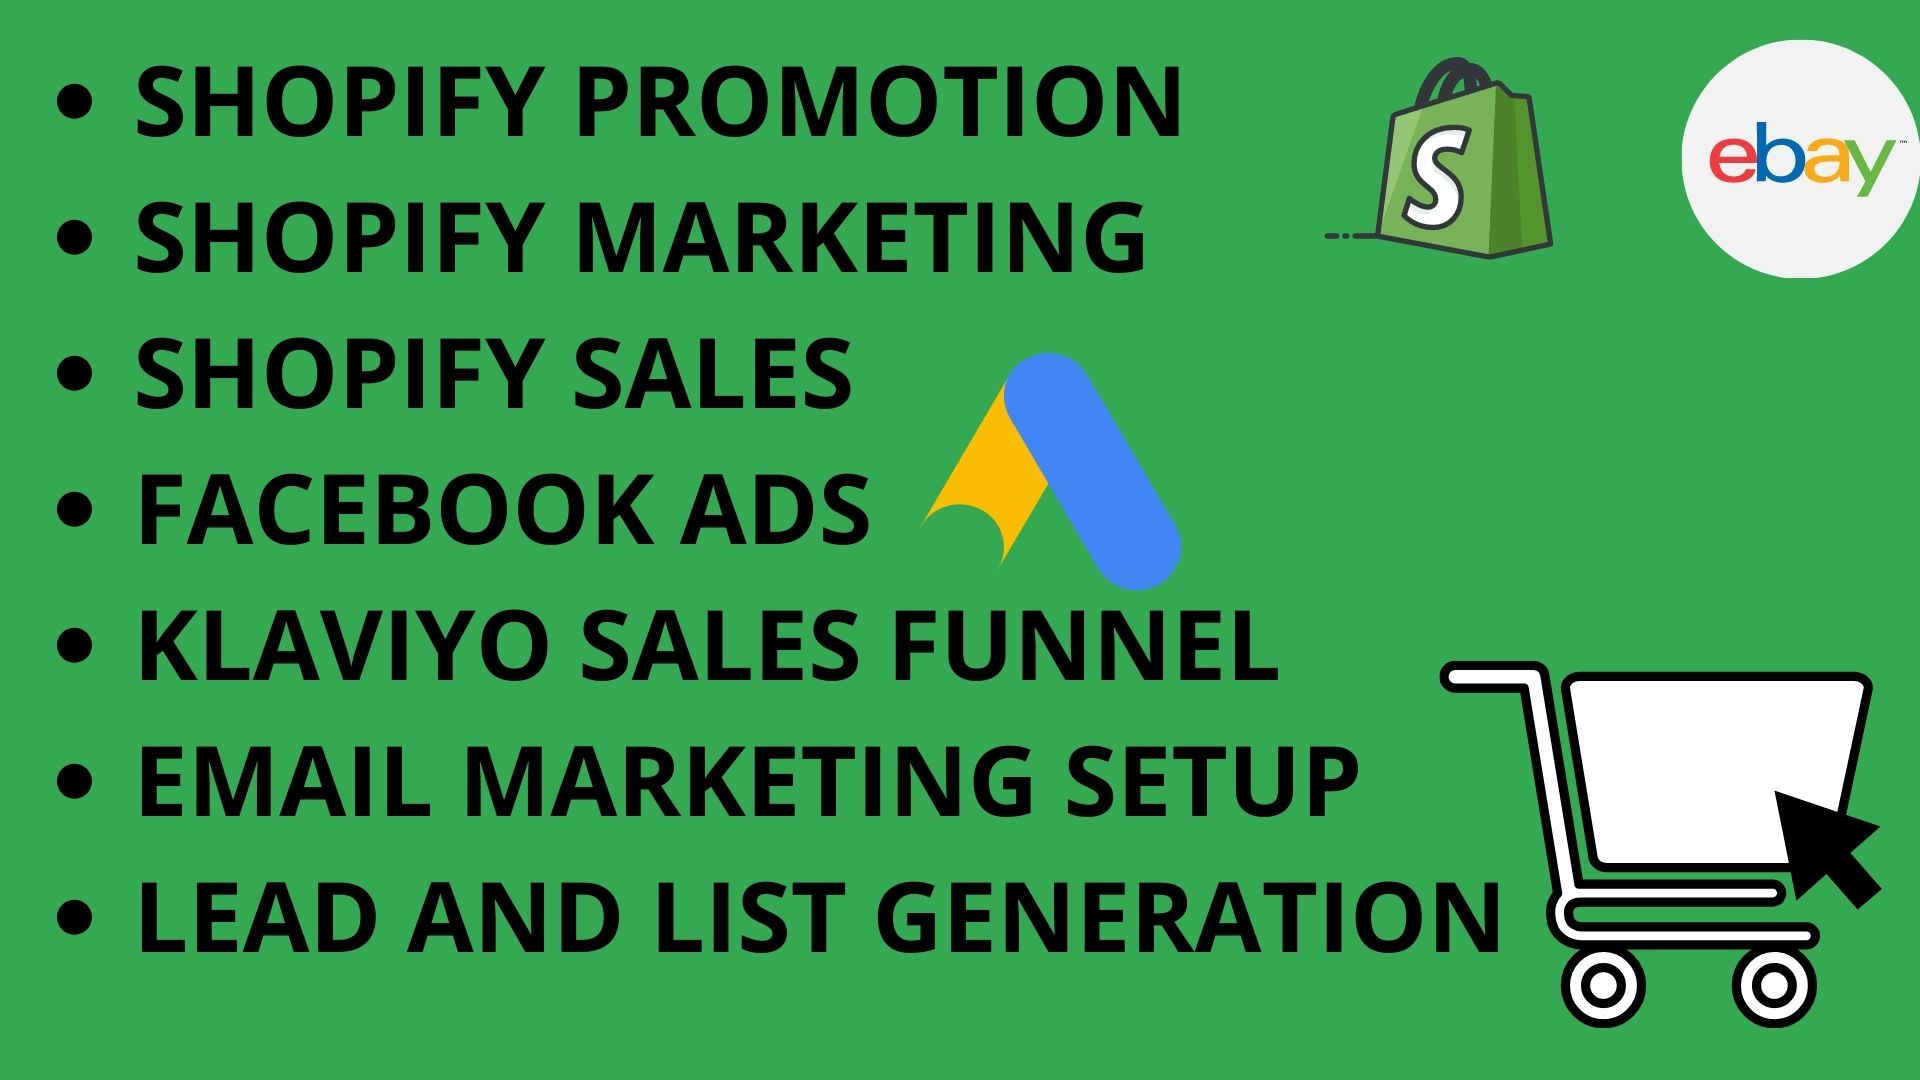 I will create impressive shopify SEO, shopify sales marketing for shopify sales, FiverrBox